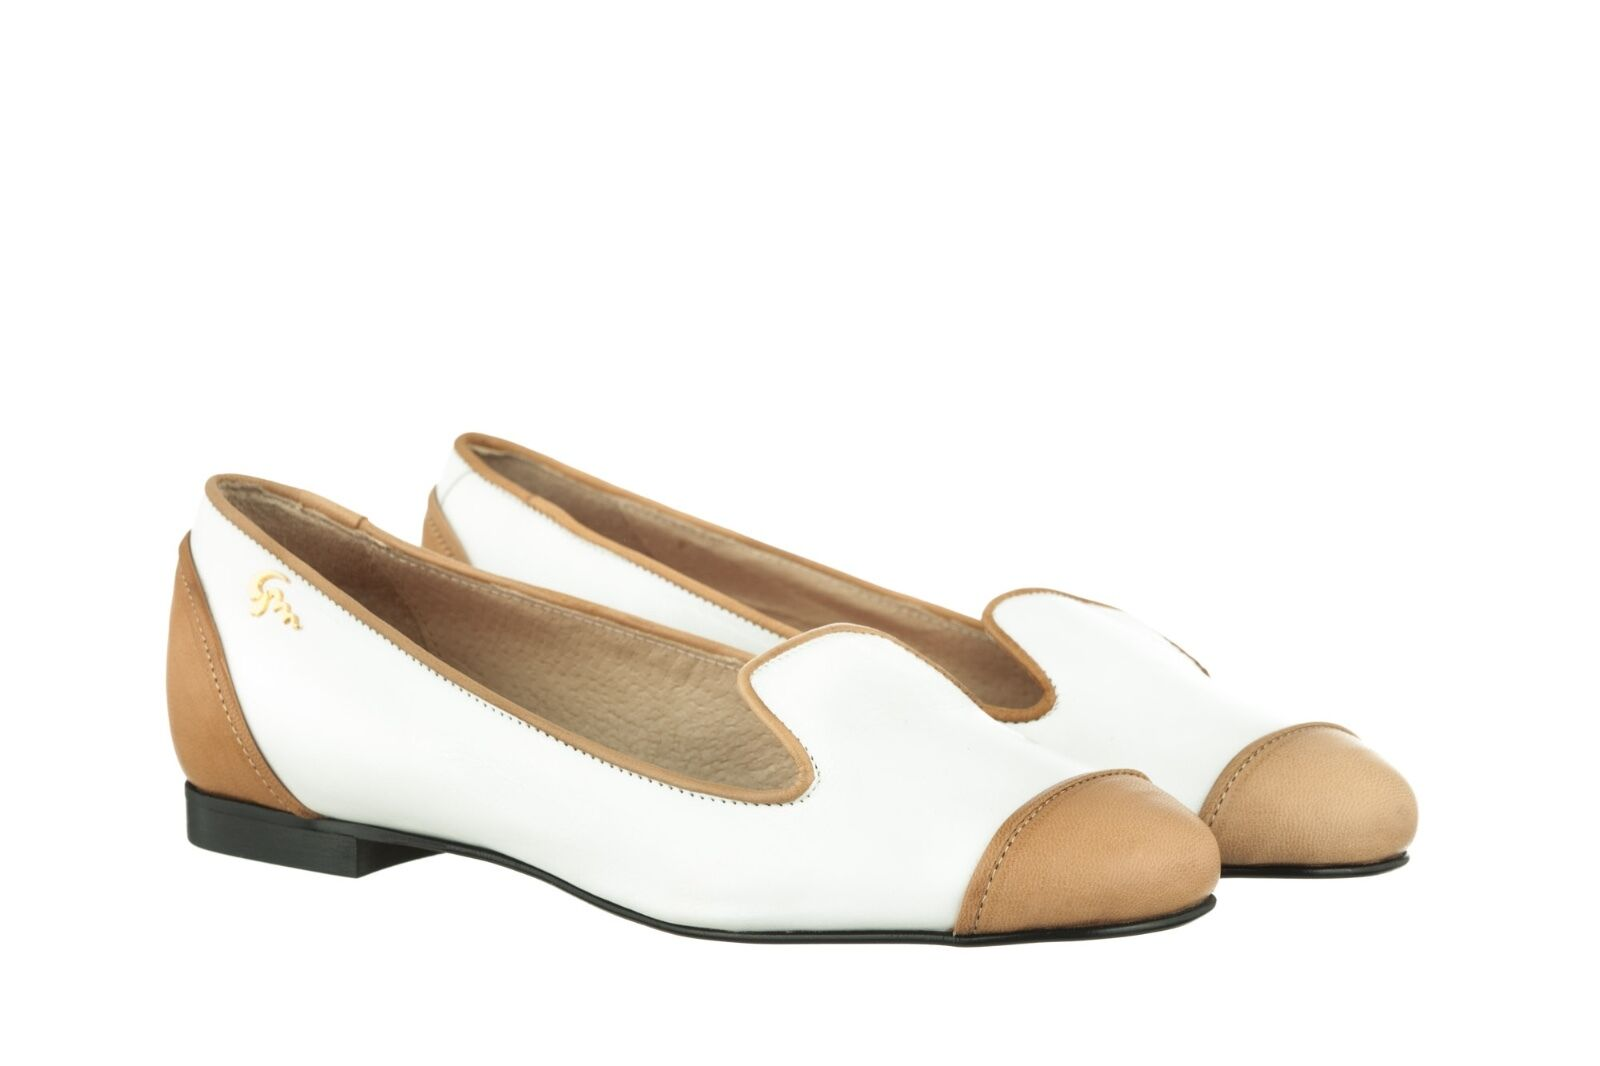 MORI BALLERINA MADE IN ITALY SLIP ON FLATS SCHUHE Schuhe BALLERINA MORI LEATHER Weiß BIANCO 37 68ea36